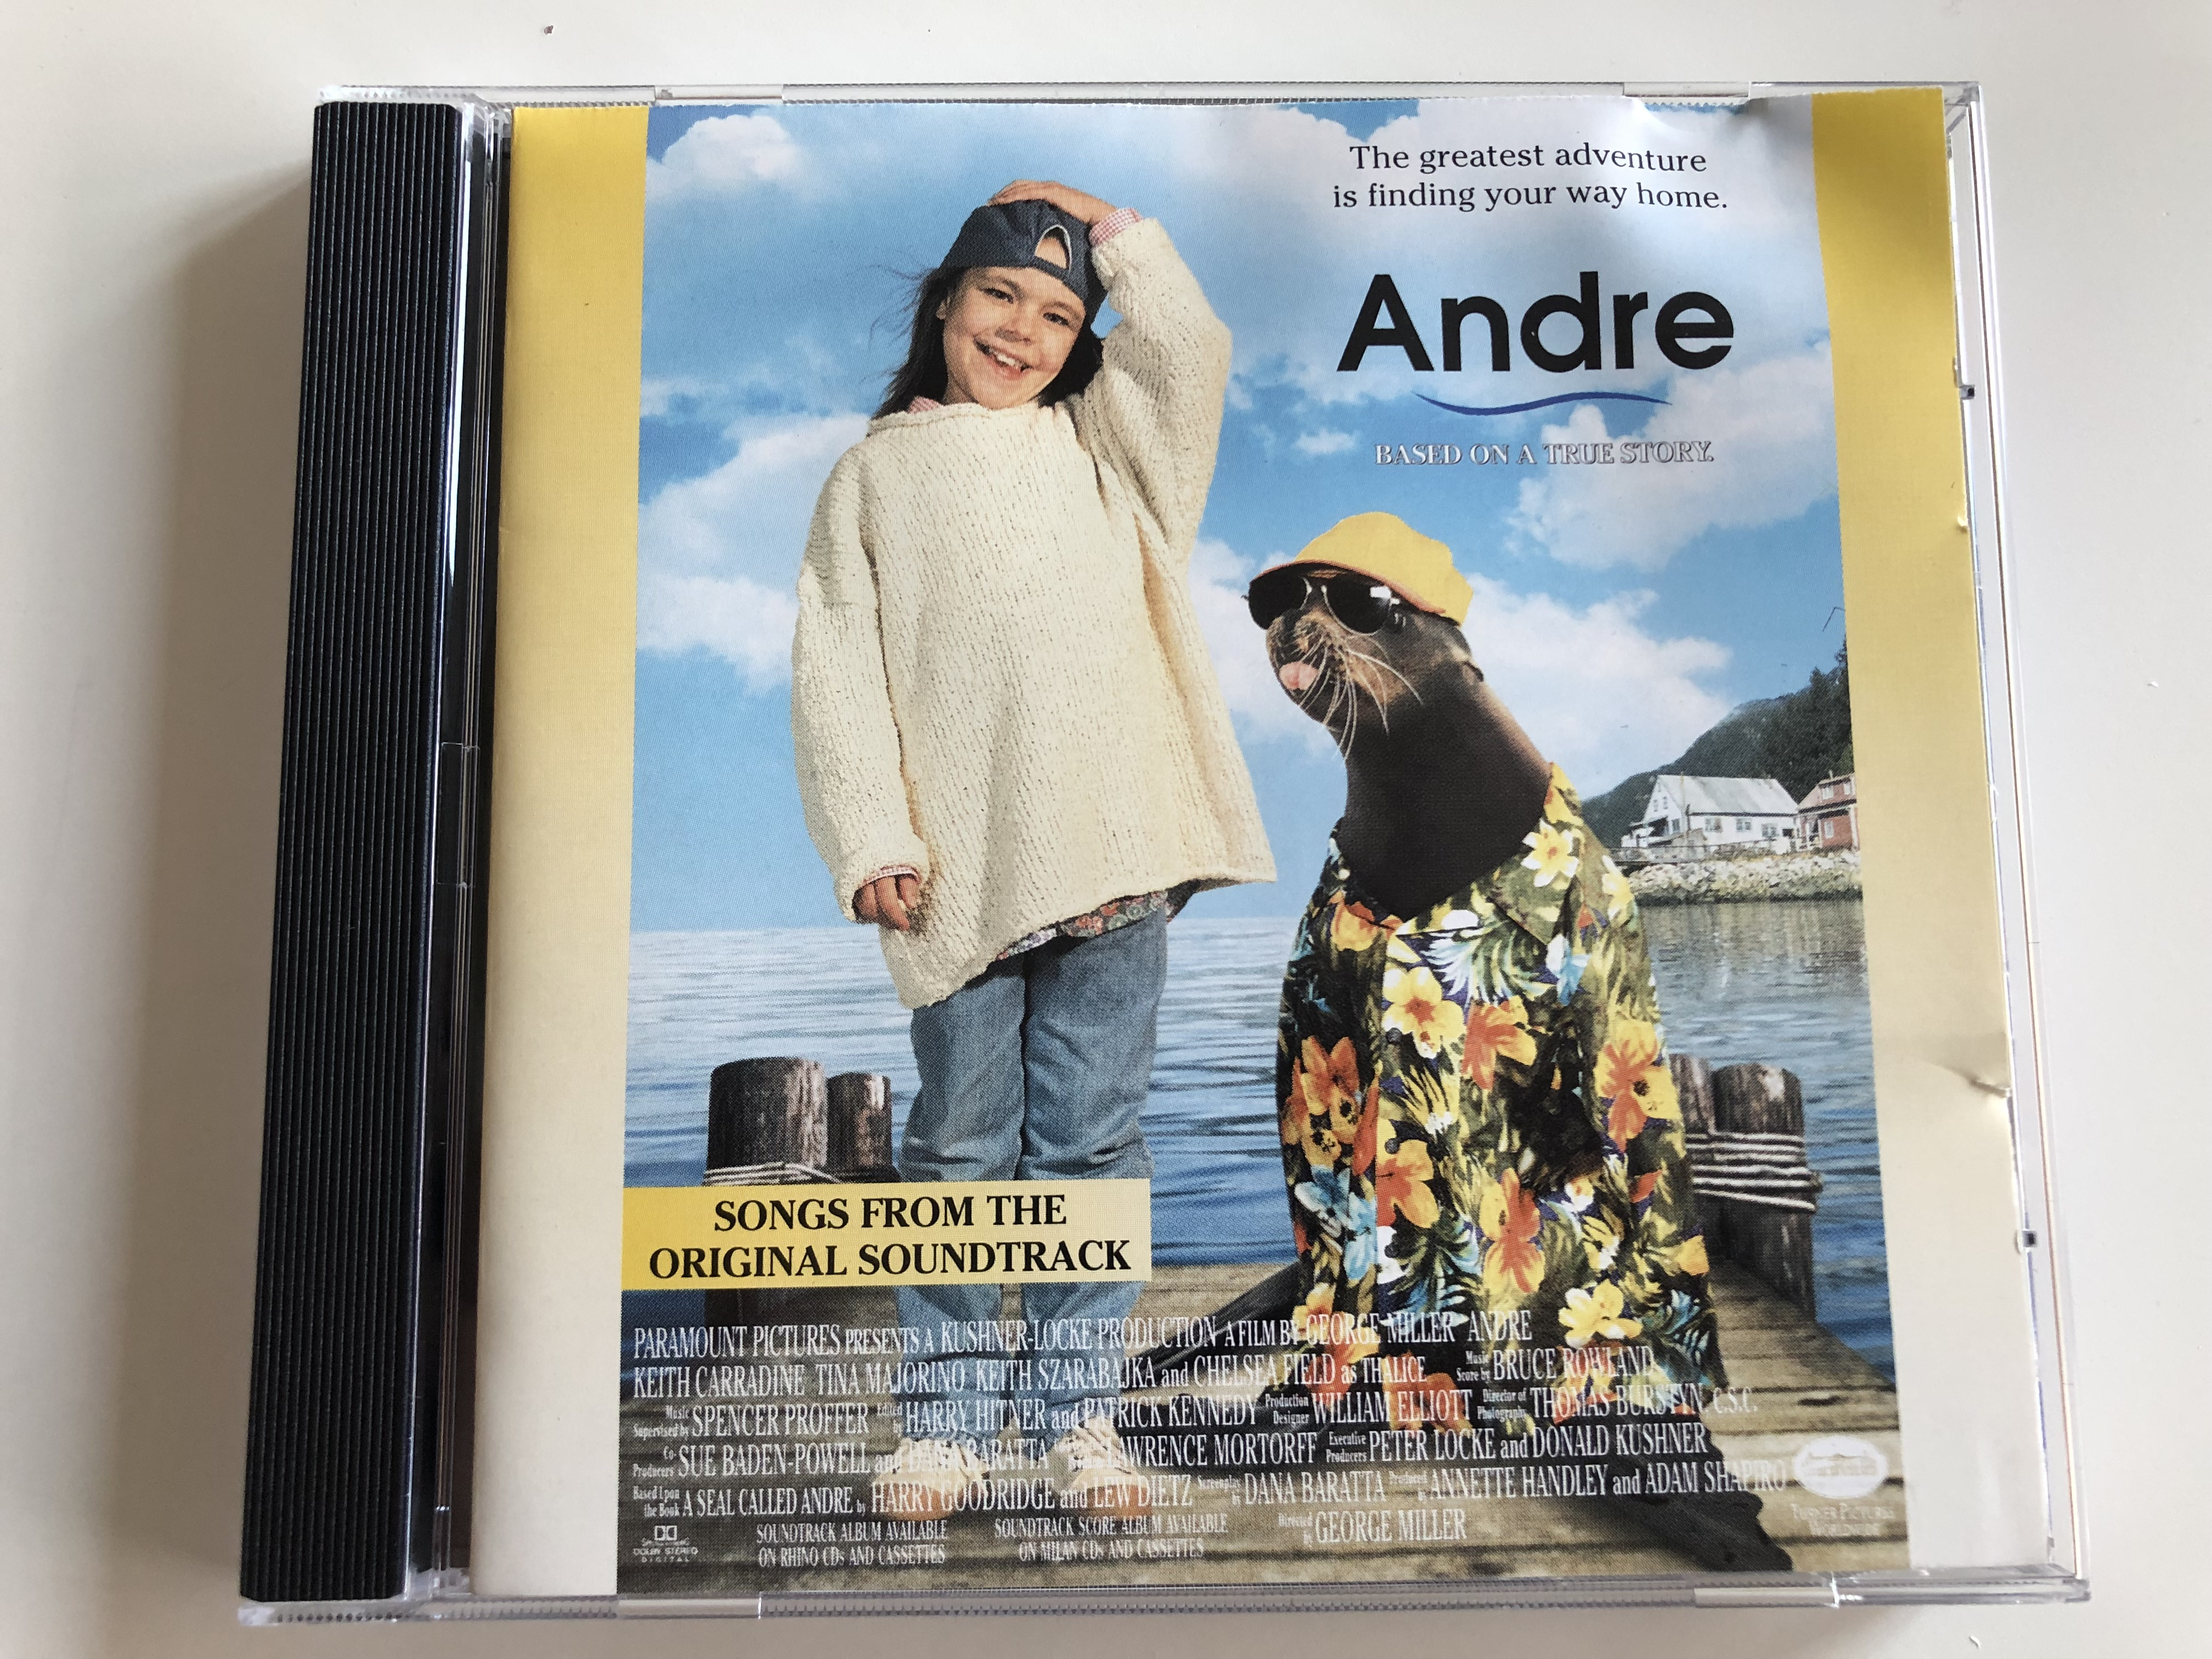 andre-based-on-a-true-story-songs-from-the-original-soundtrack-the-greatest-adventure-is-finding-your-way-home-audio-cd-1994-8122-71802-2-ca-851-1-.jpg